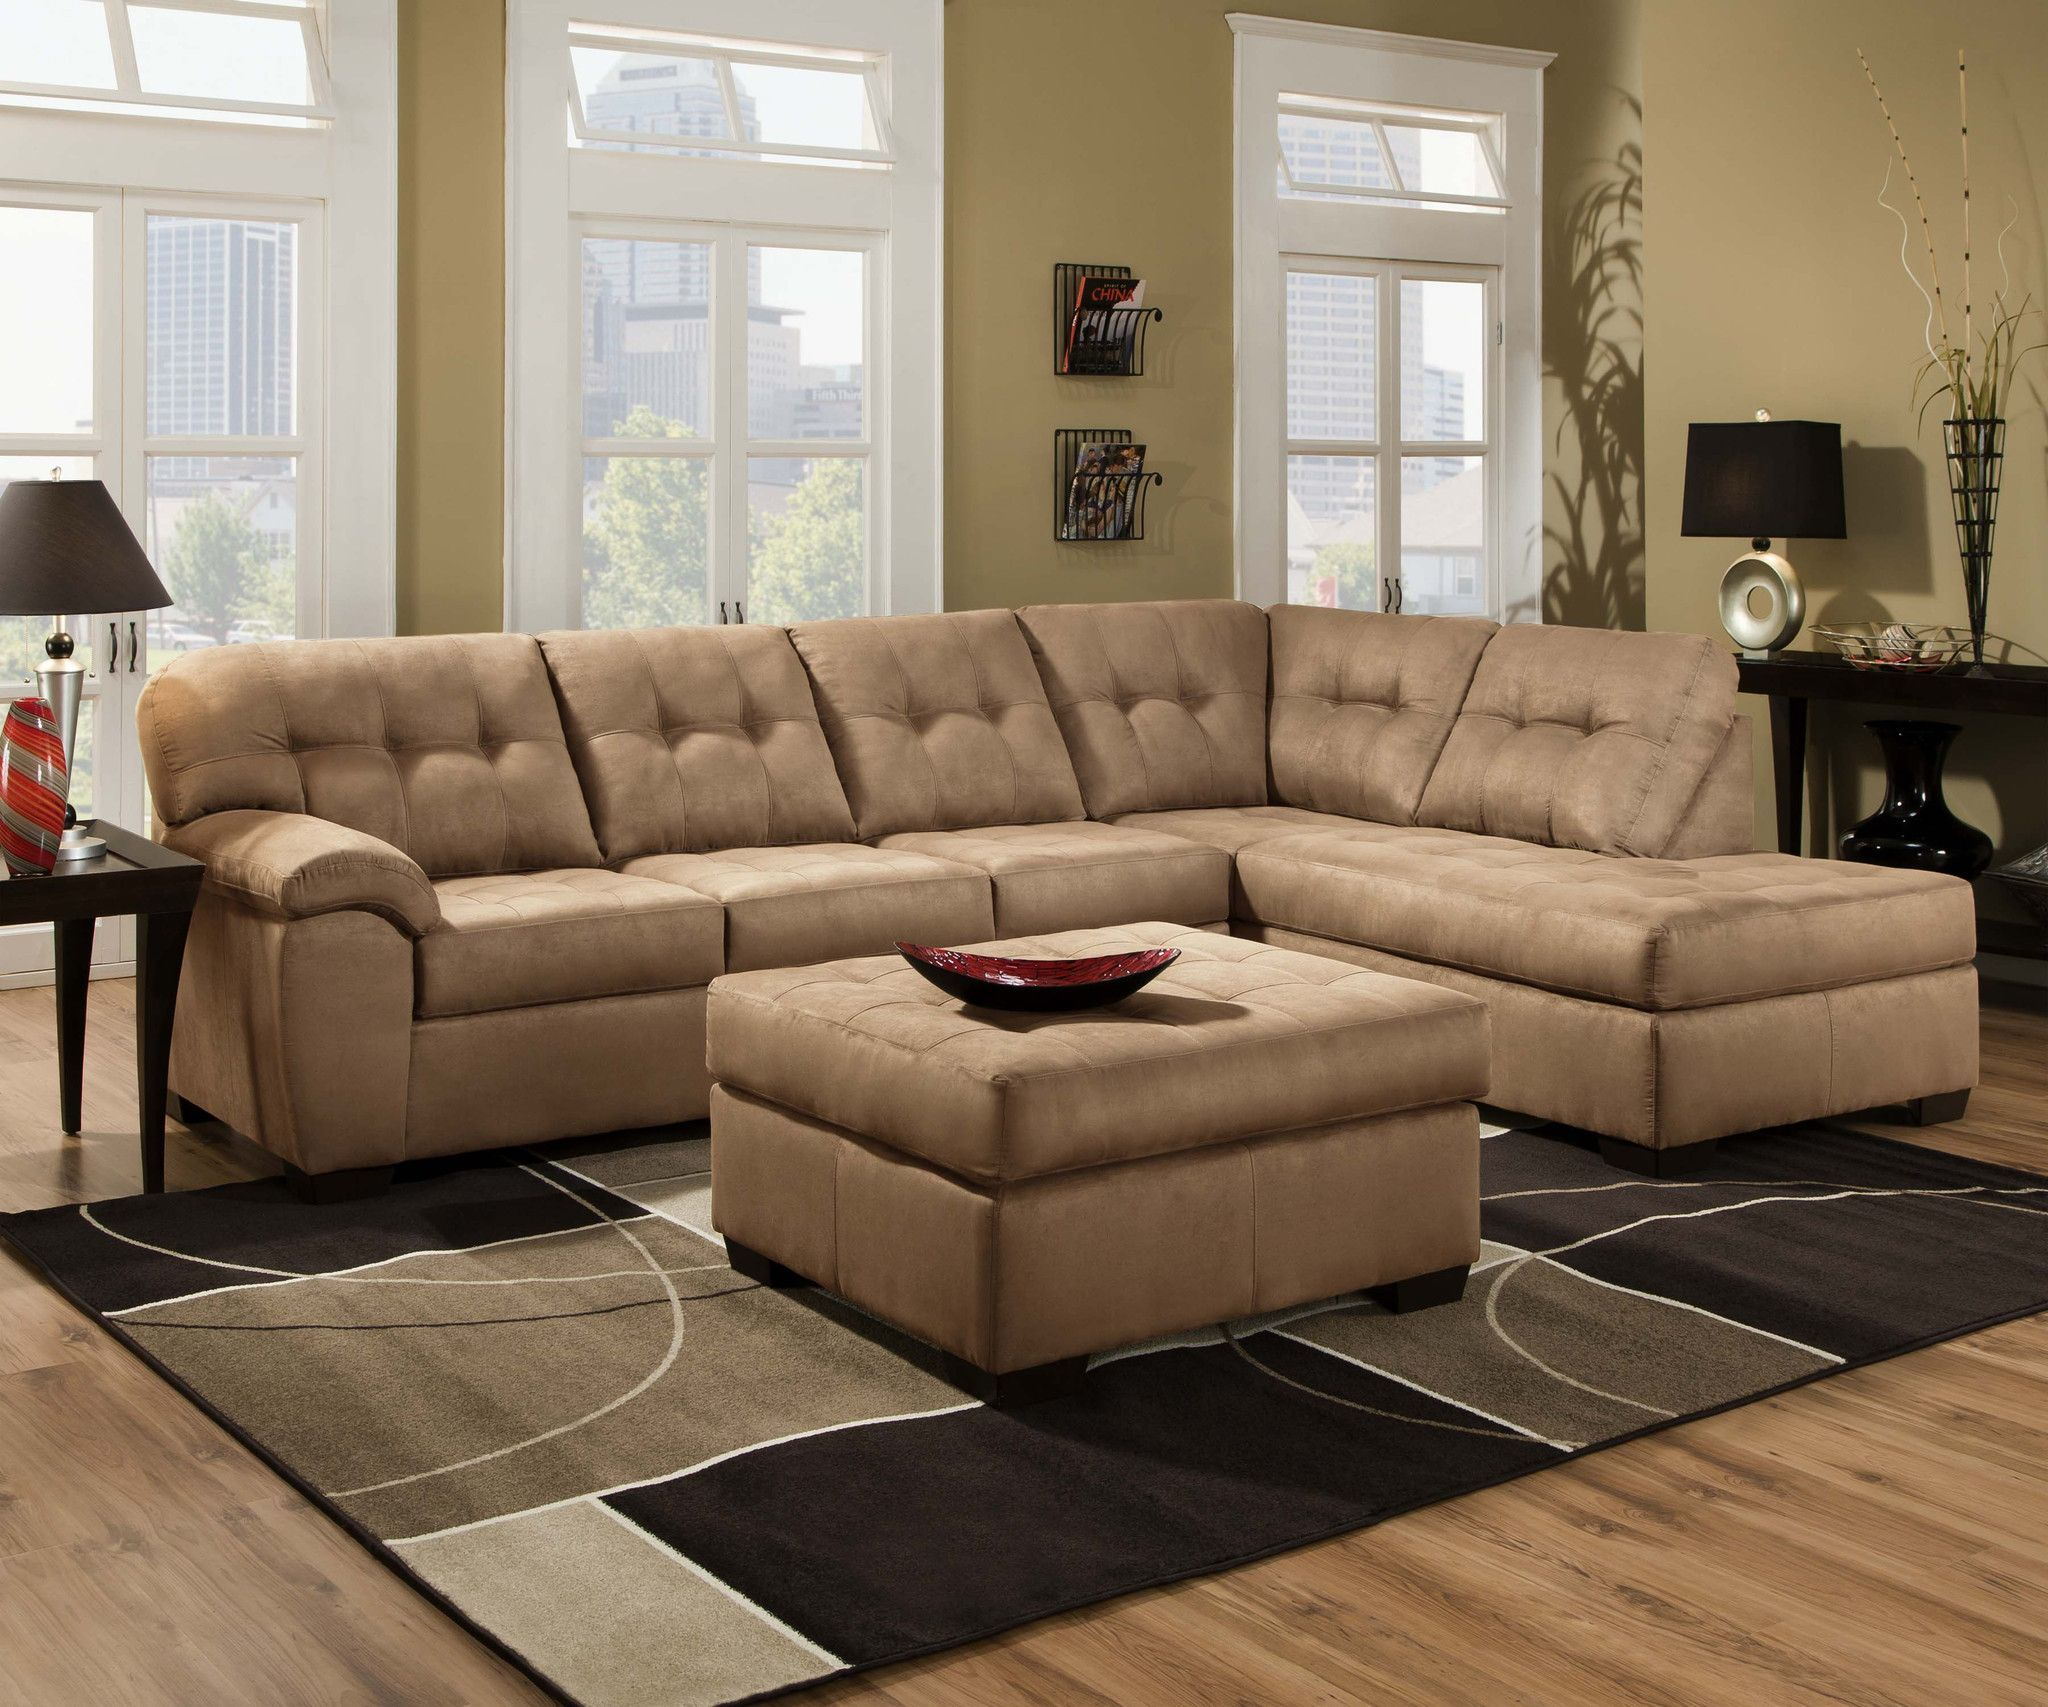 Simmons Upholstery 9558 Velocity Latte Sectional High Point Furniture Distributors Sectional Sofa With Chaise Sectional Sofa Sectional Sofa Sale